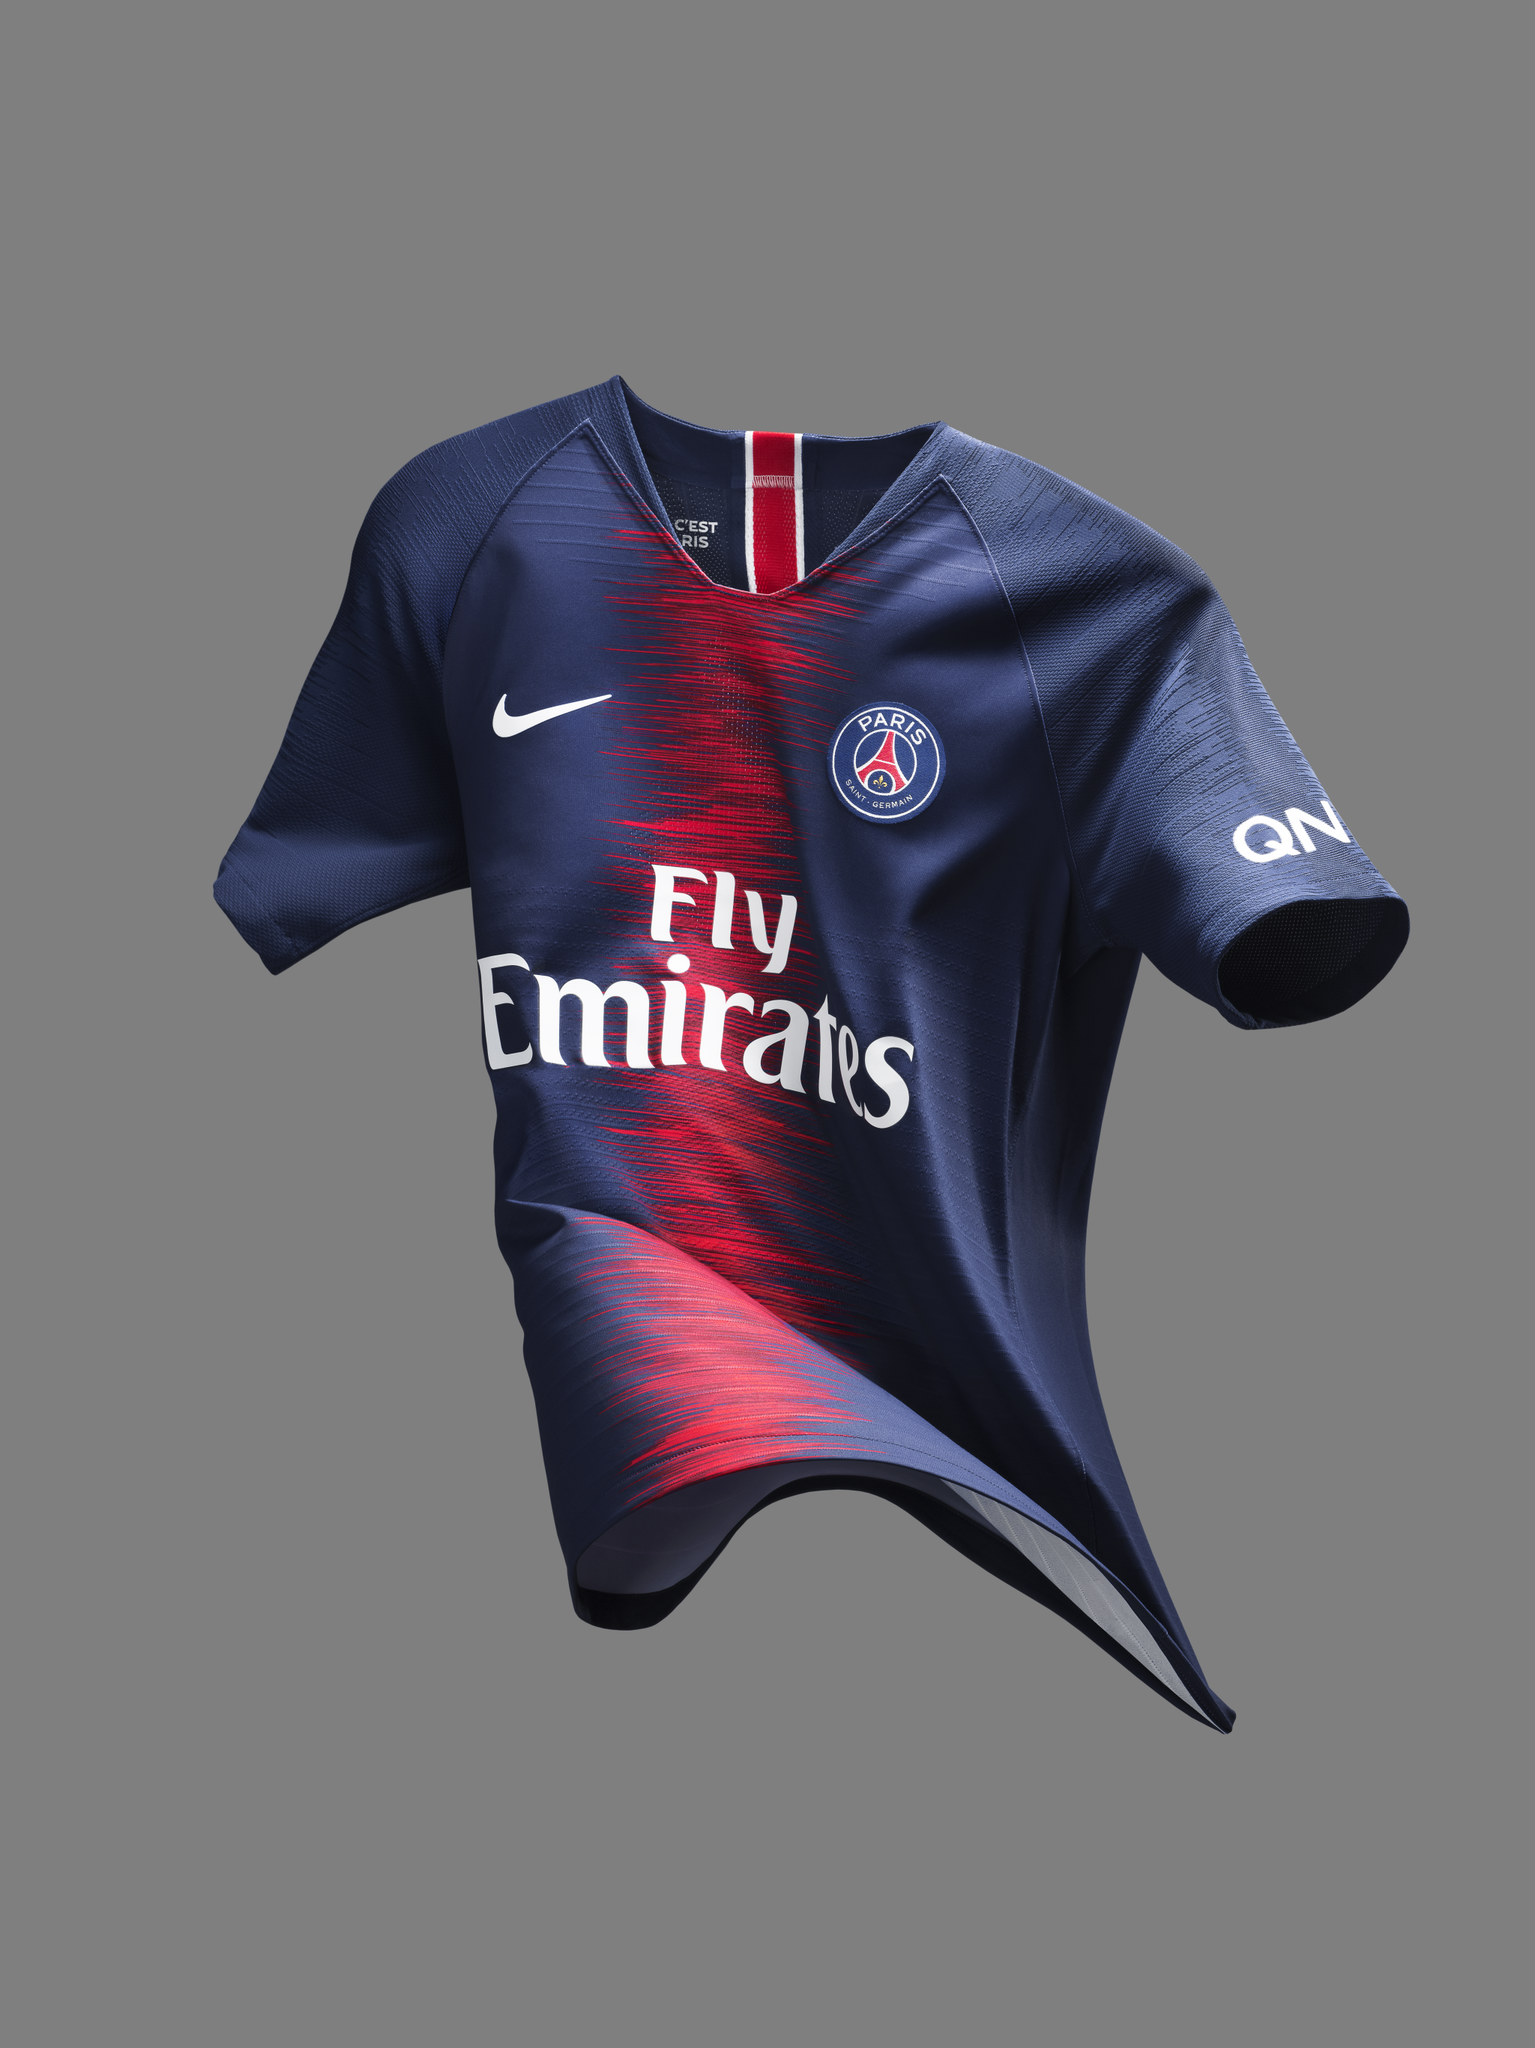 482a76576 ... Click to enlarge image paris saint germain 18 19 nike home kit g.jpg